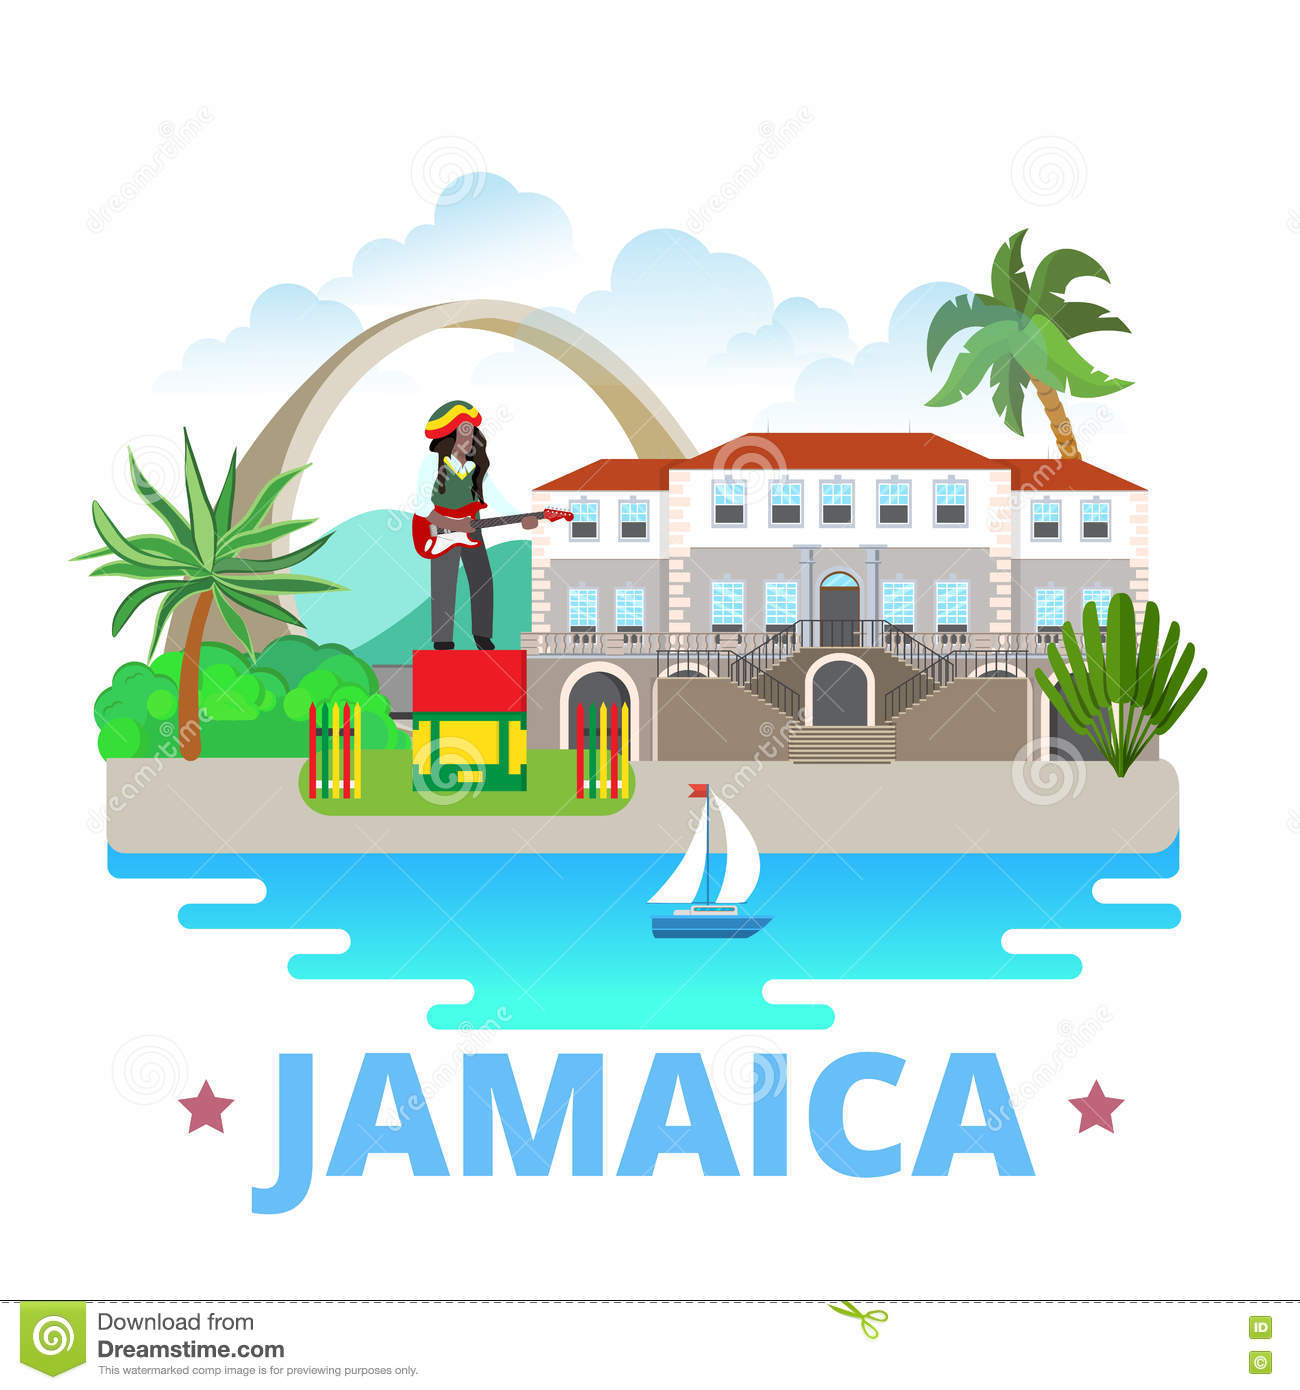 Jamaica Country Design Template Flat Cartoon Style Stock